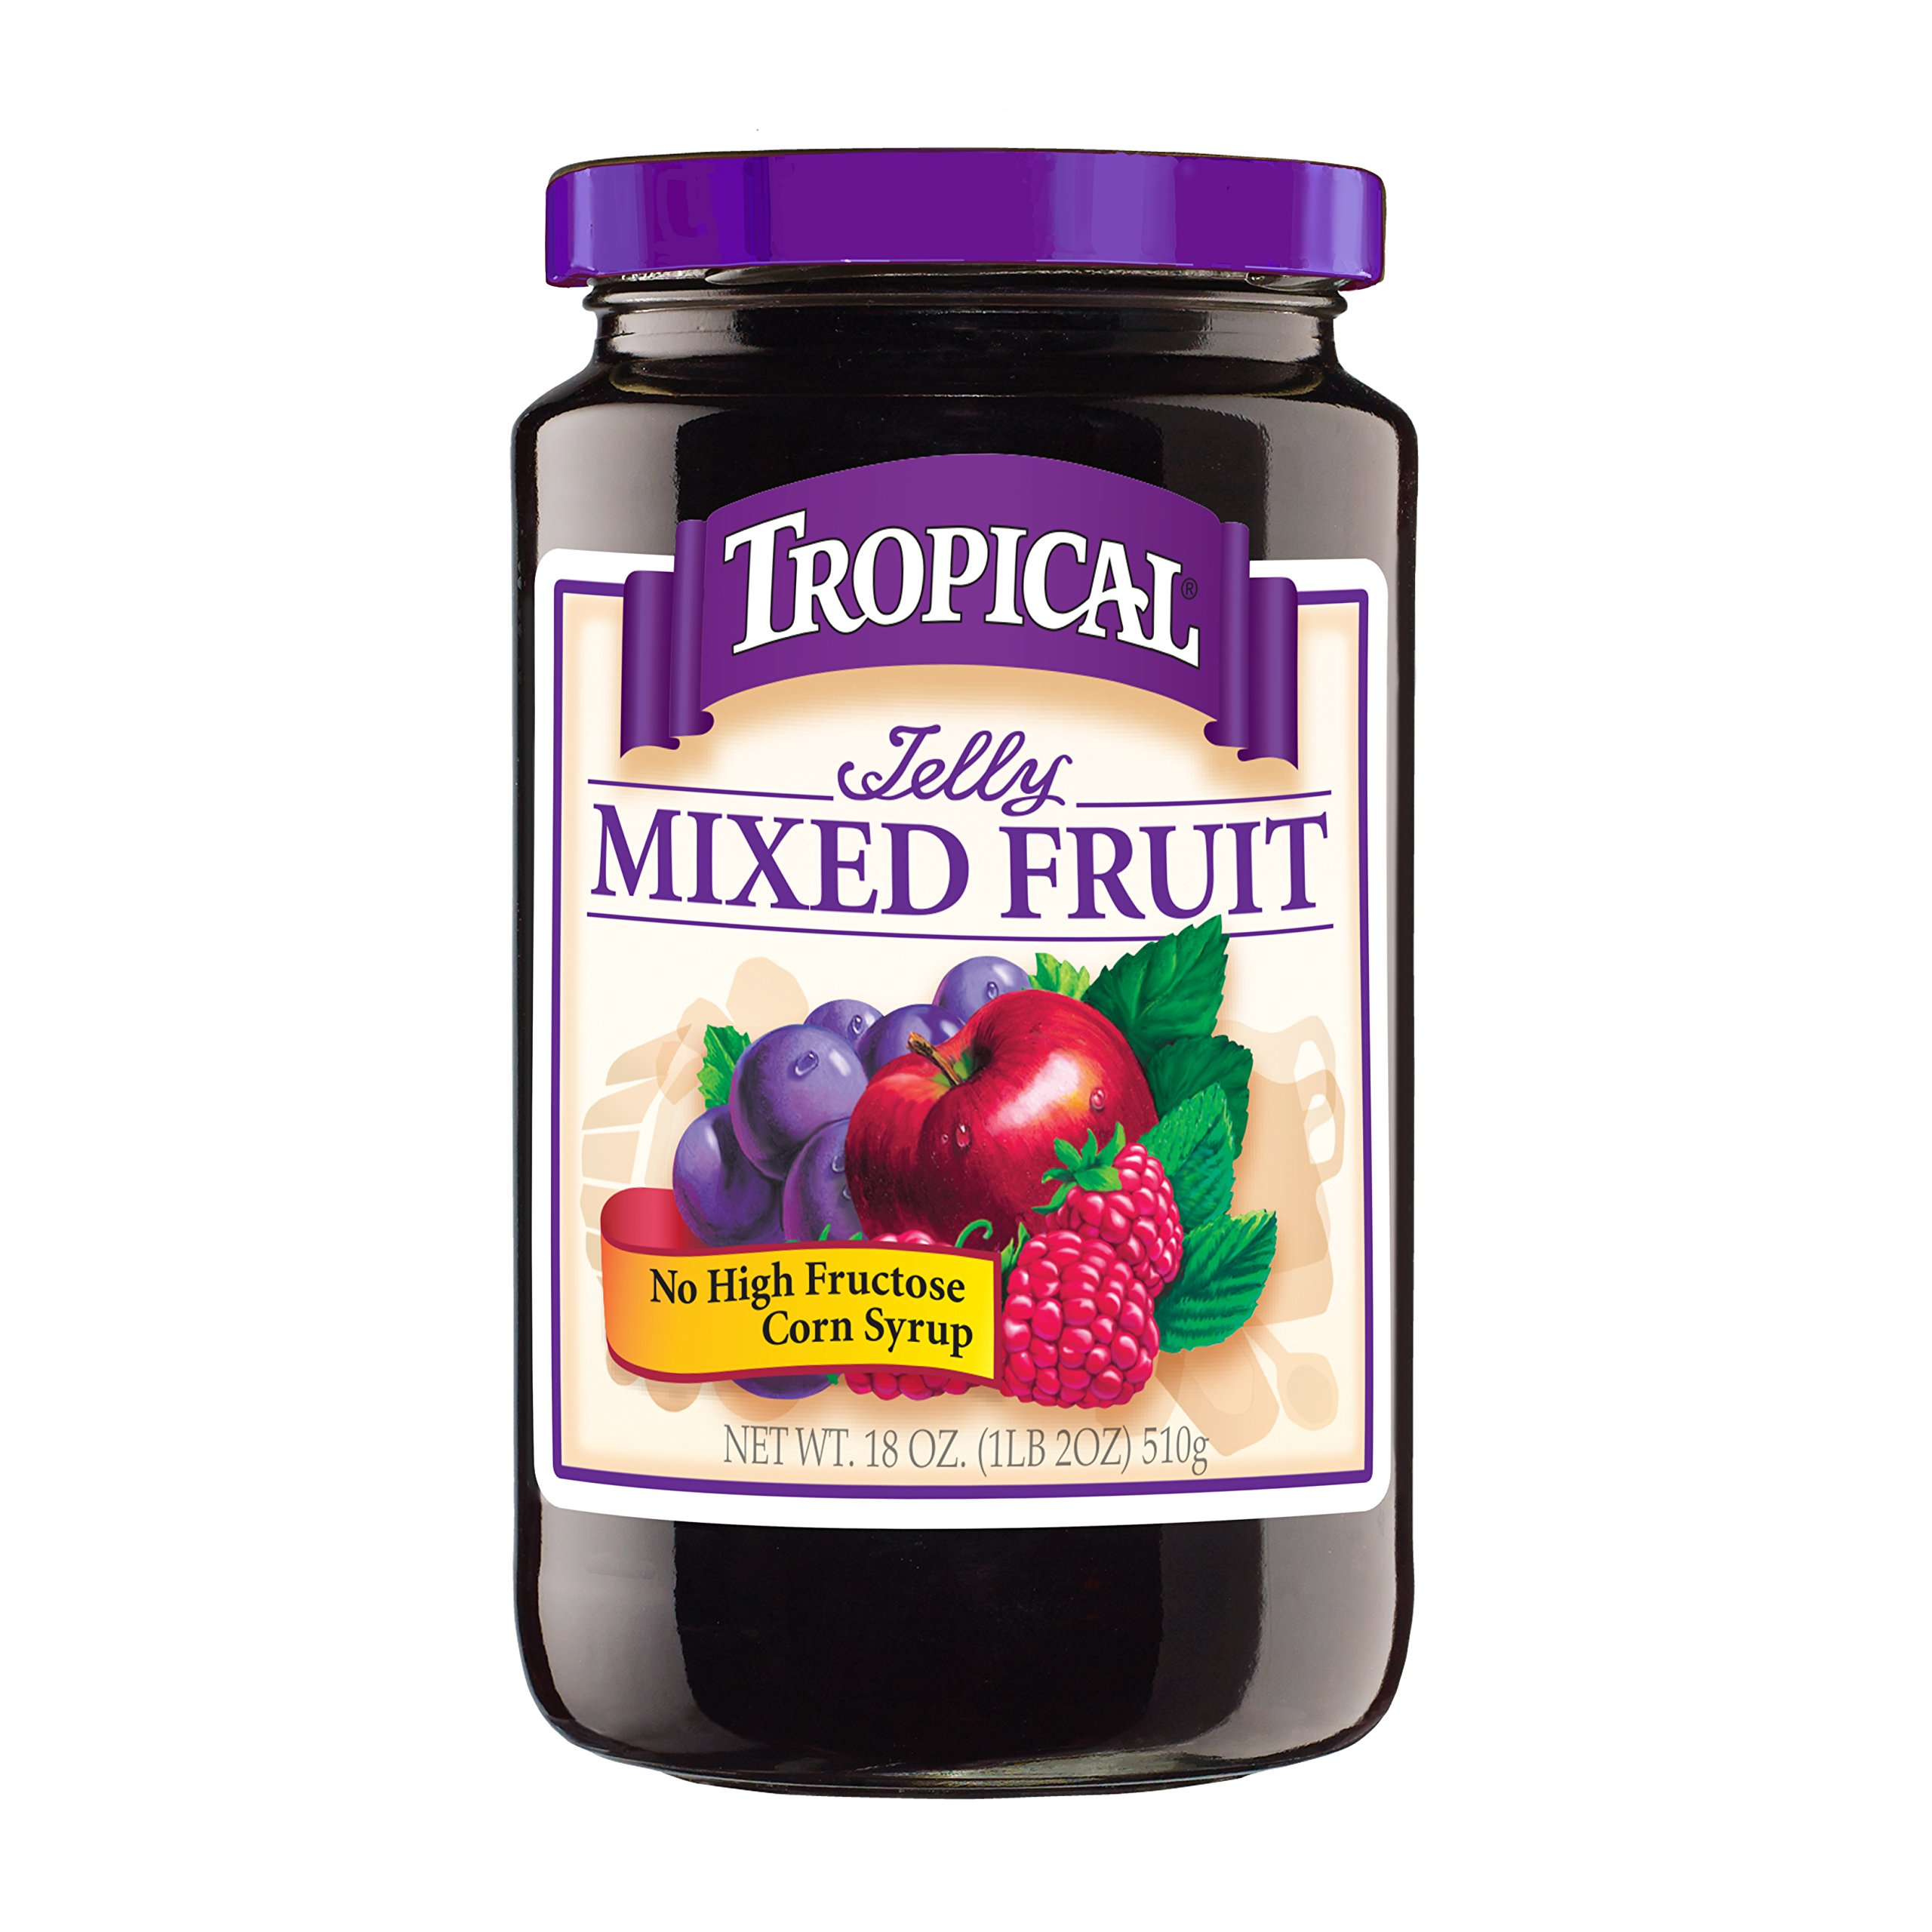 Tropical Mixed Fruit Jelly, 18 Ounce (Pack of 12)